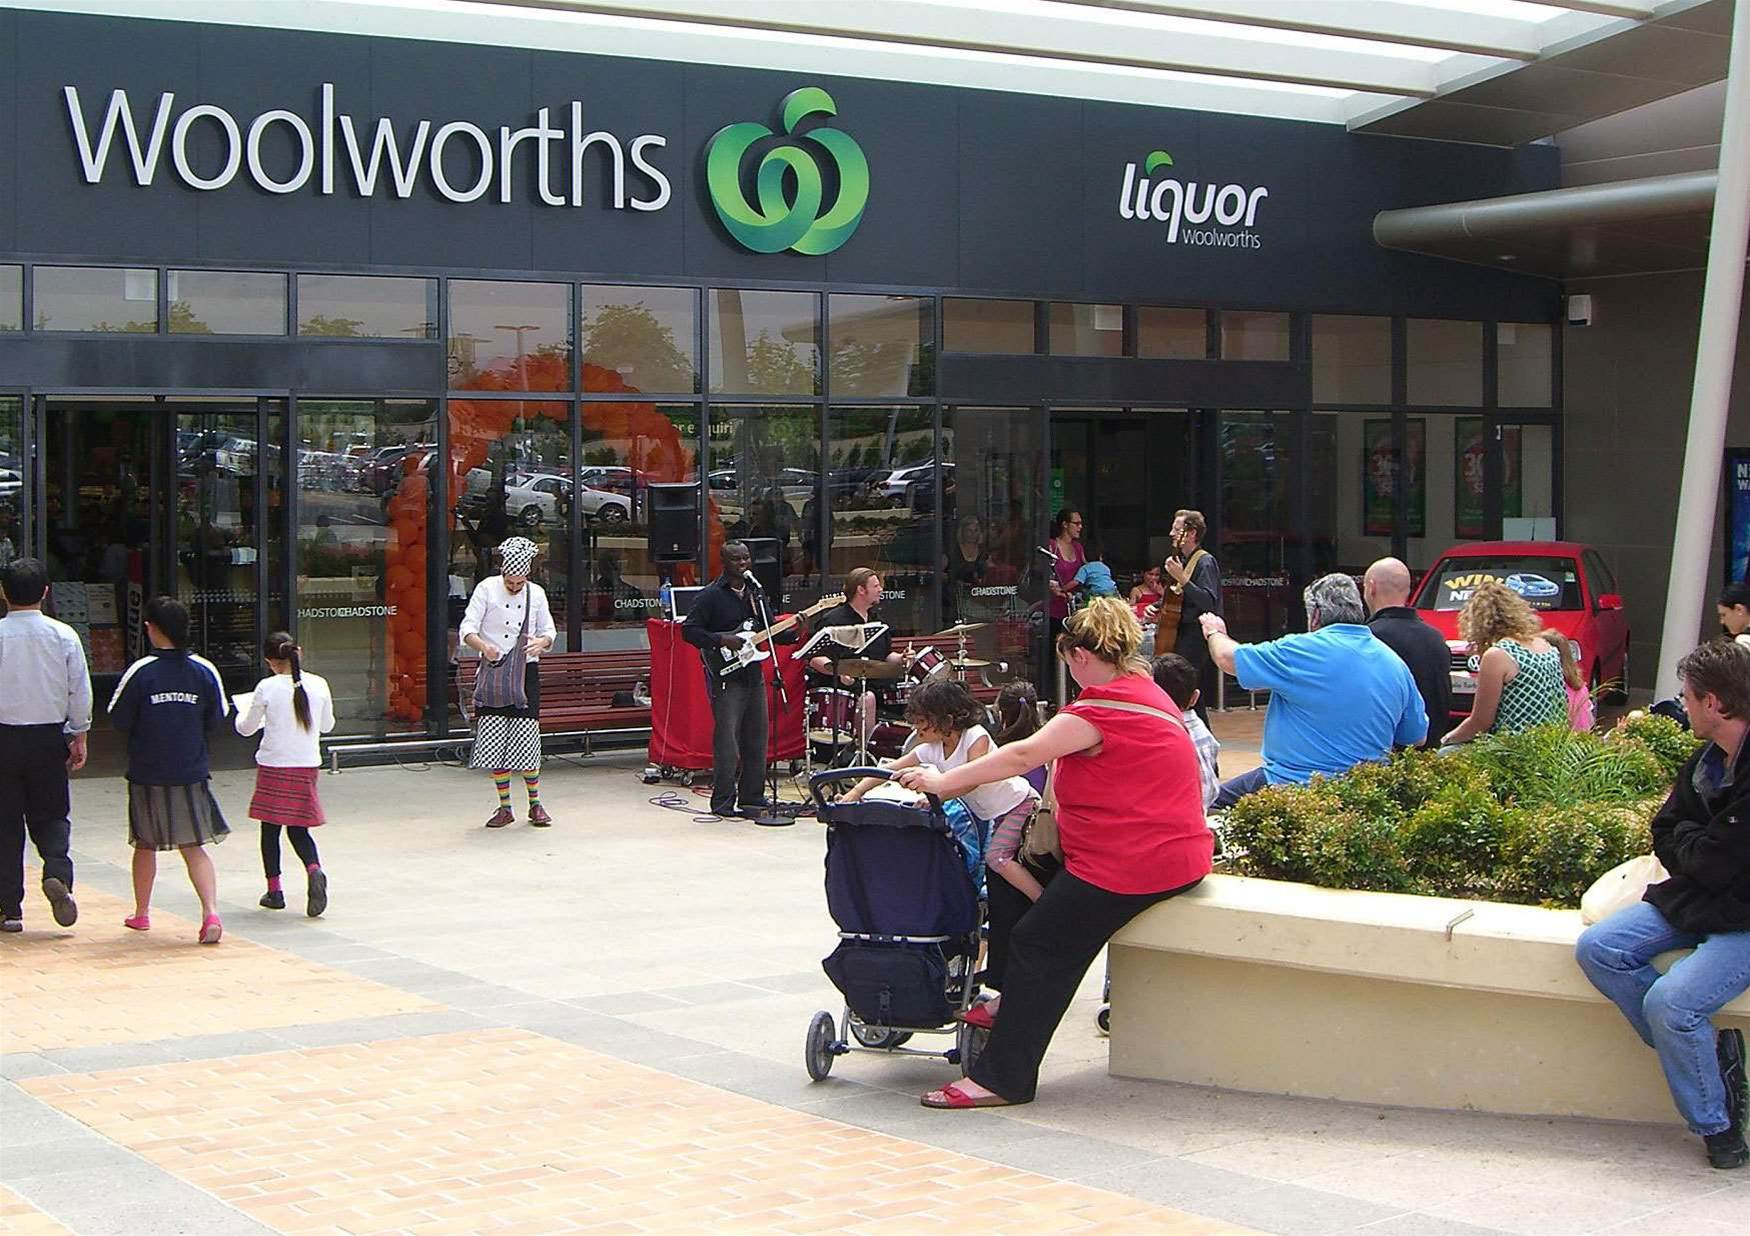 Woolworths to pilot SAP promotions software